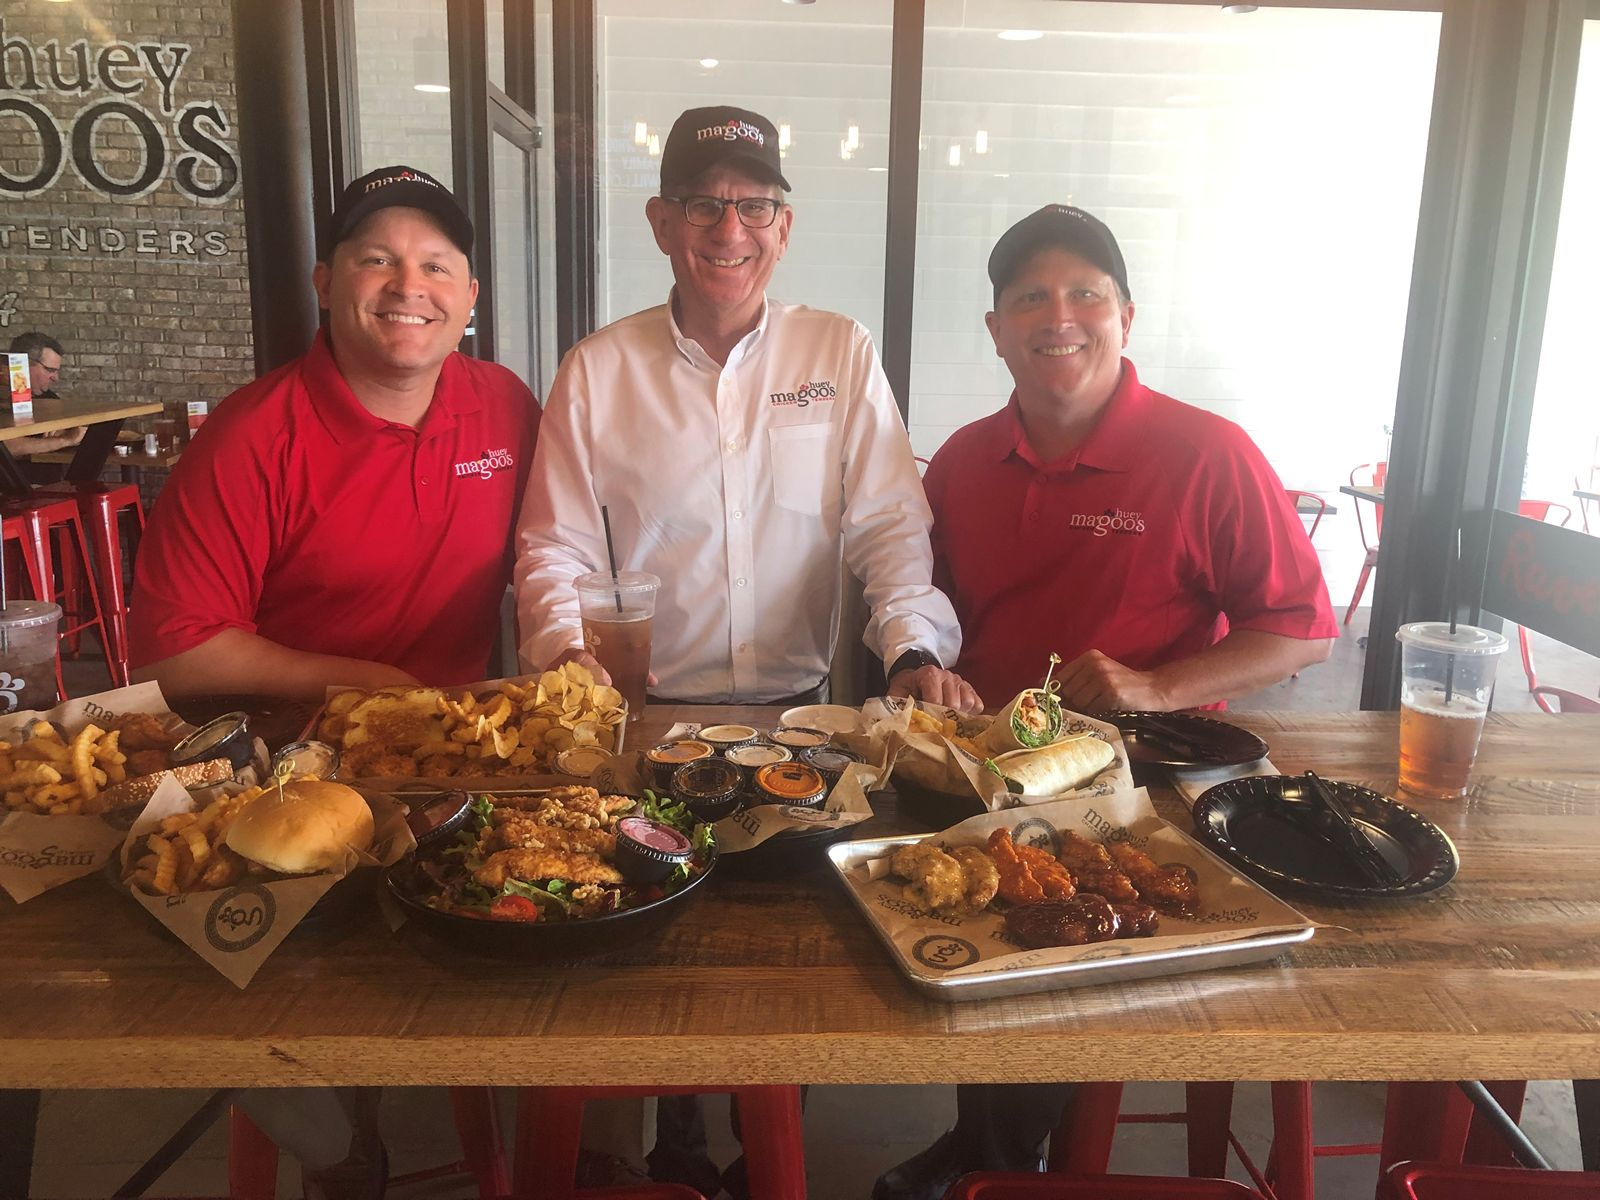 Bryan Pagan with Huey Magoo's President and CEO Andy Howard, and James Connolly.